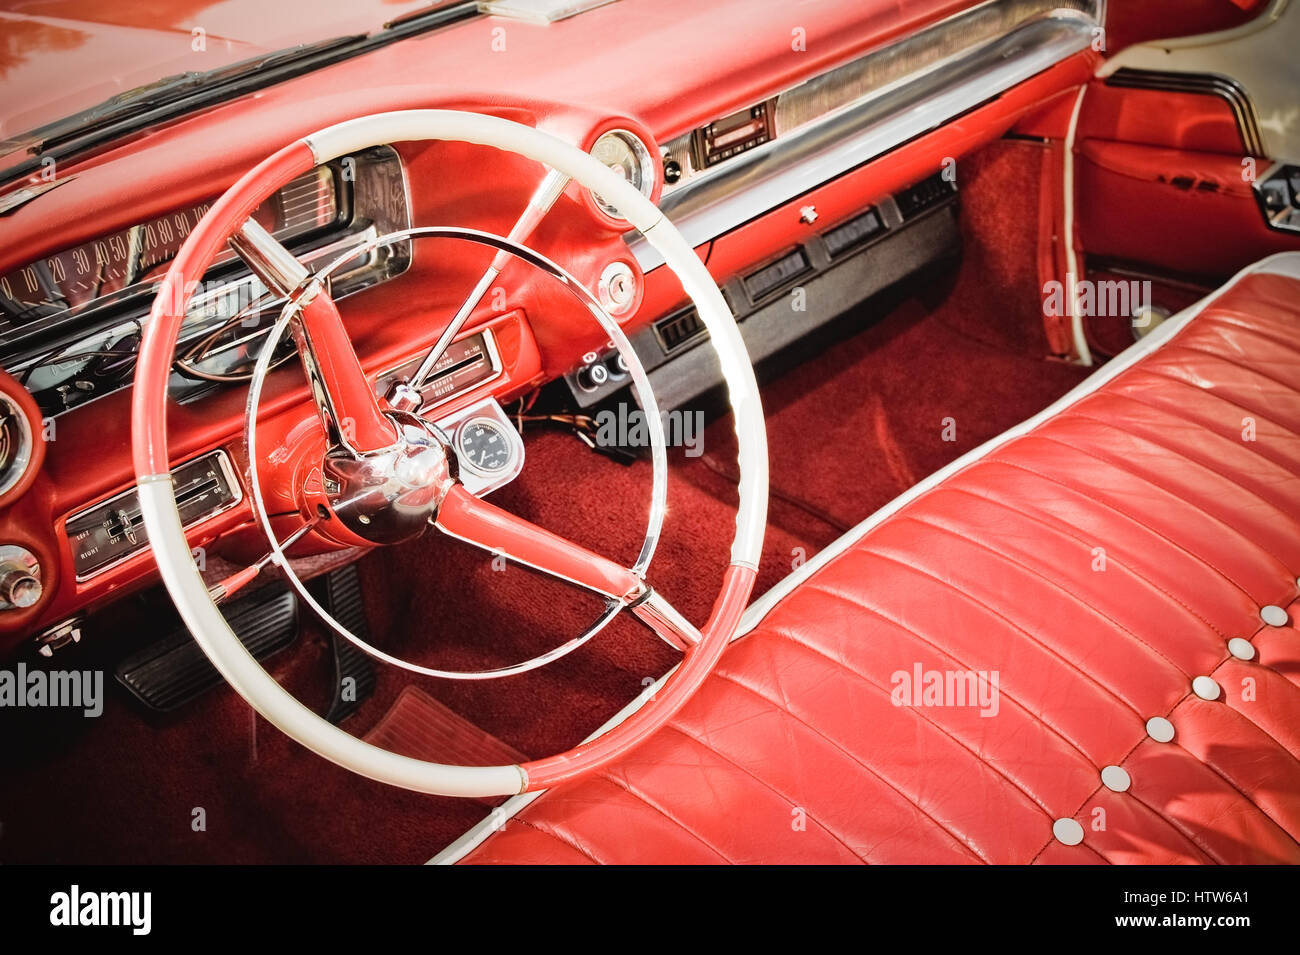 Classic American Car Interior With Red Leather Upholstery And Matching  Dashboard